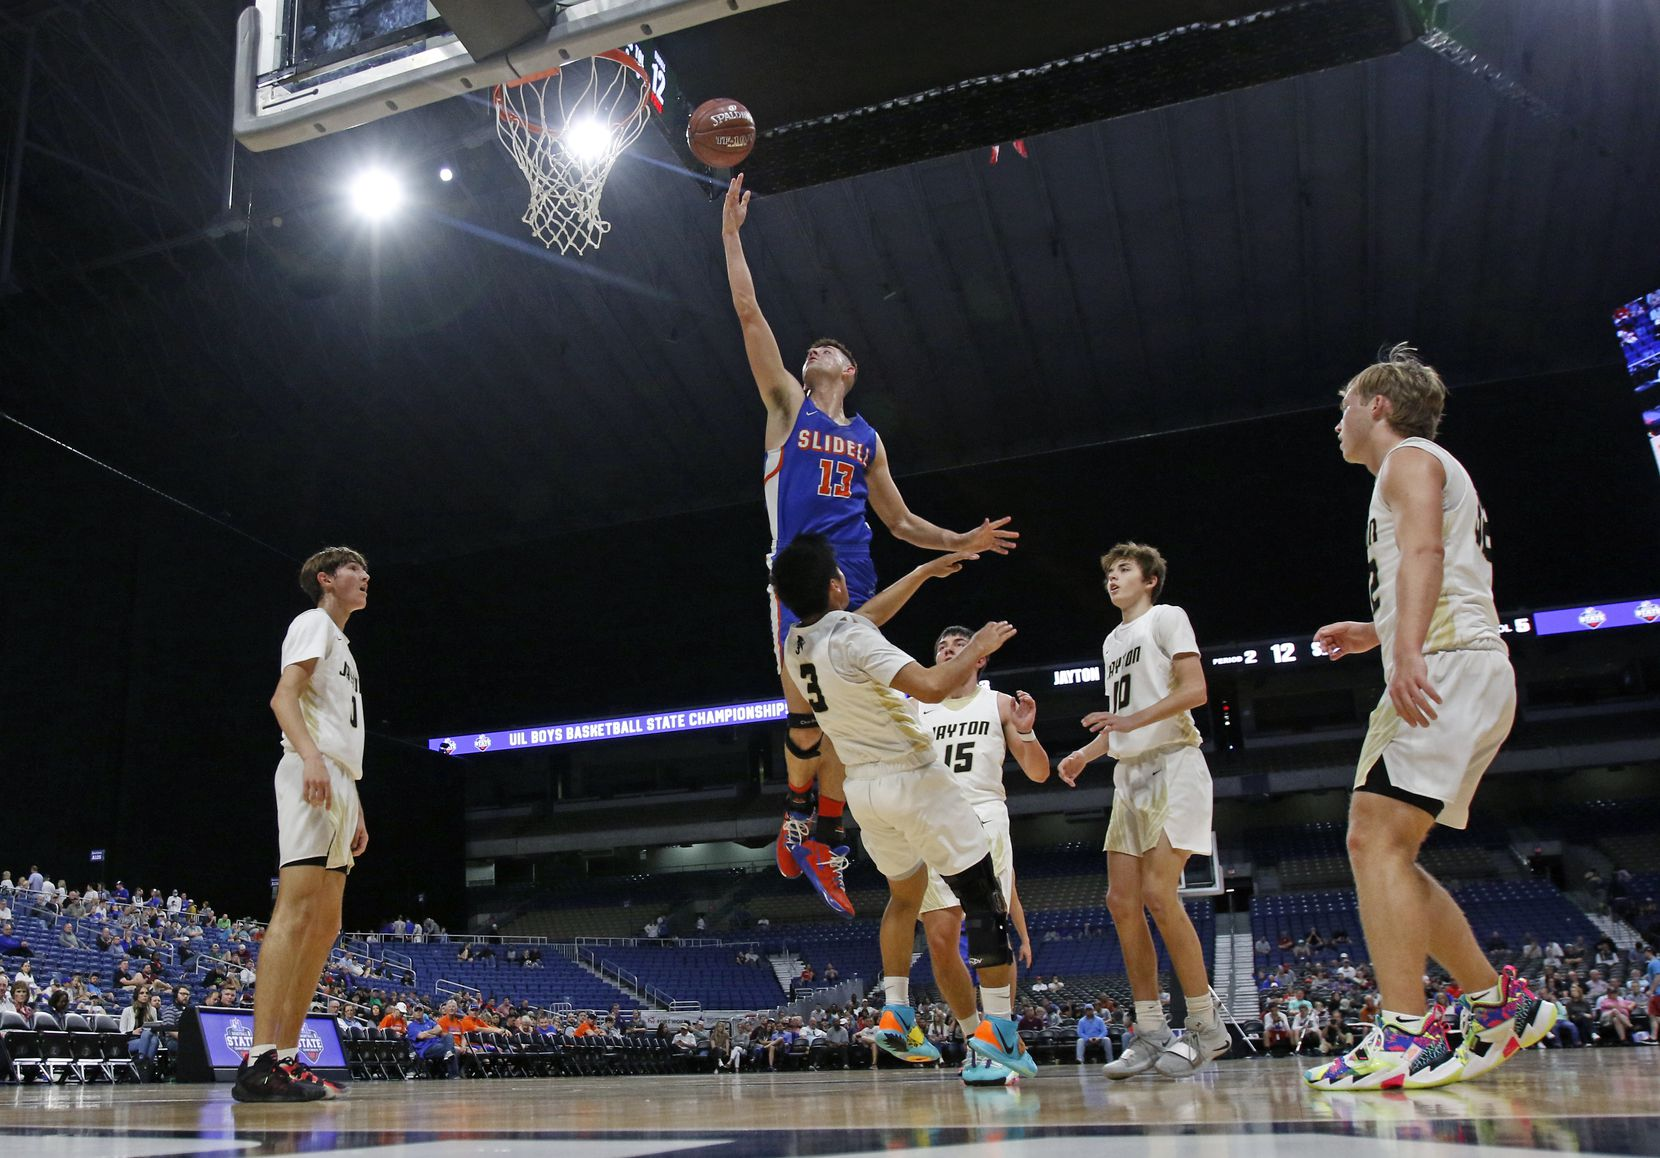 Slidell center Slayton Pruett #13 drives for two over Jayton guard Aaron Hernandez #3. Slidell defeated Jayton 45-28 in a Class 1A semifinal game on Thursday, March 12, 2020 at the Alamodome.